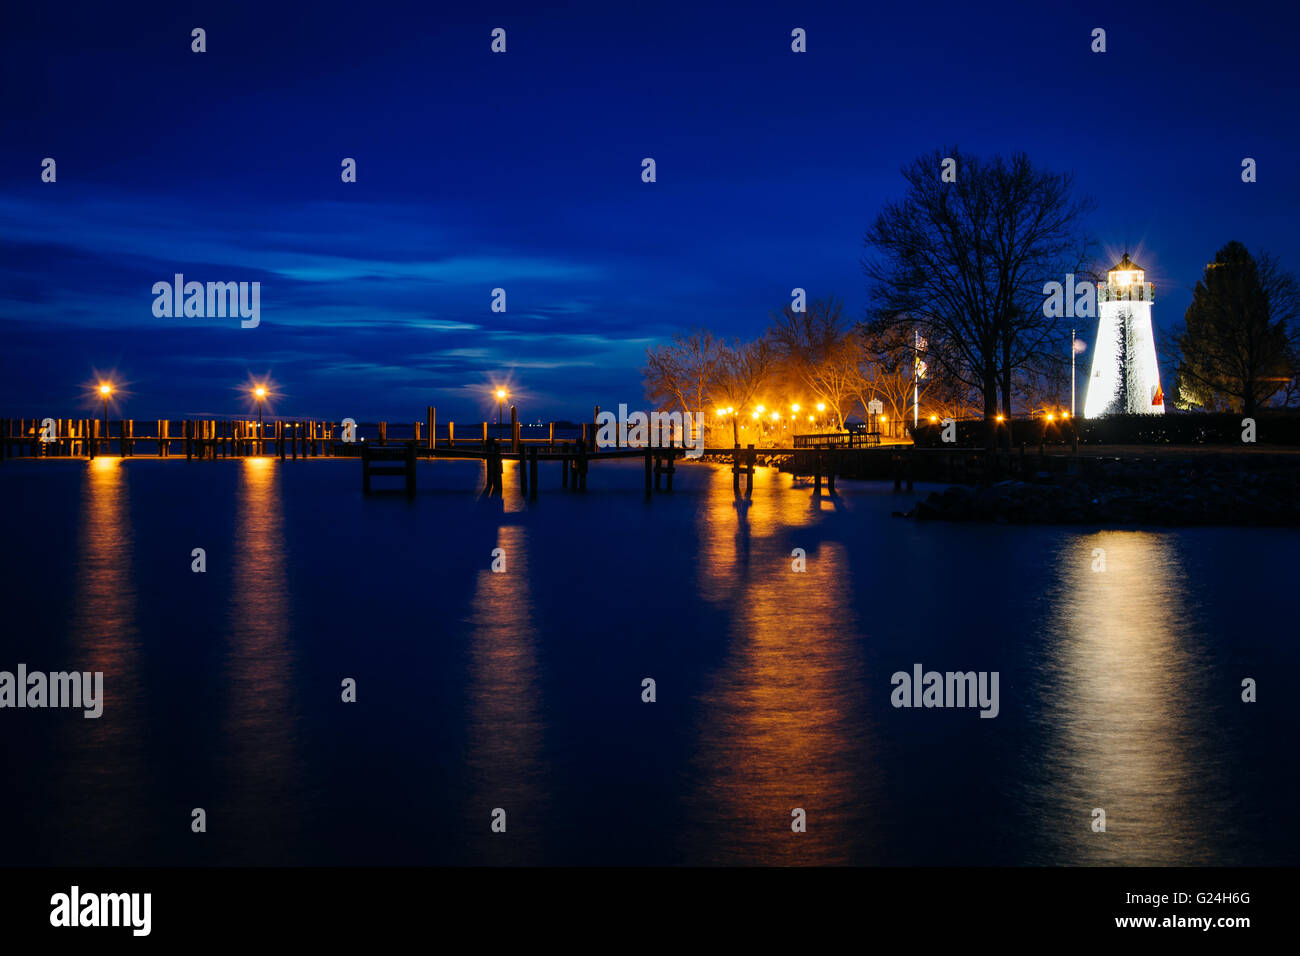 Concord Point Lighthouse and a pier at night in Havre de Grace, Maryland. - Stock Image